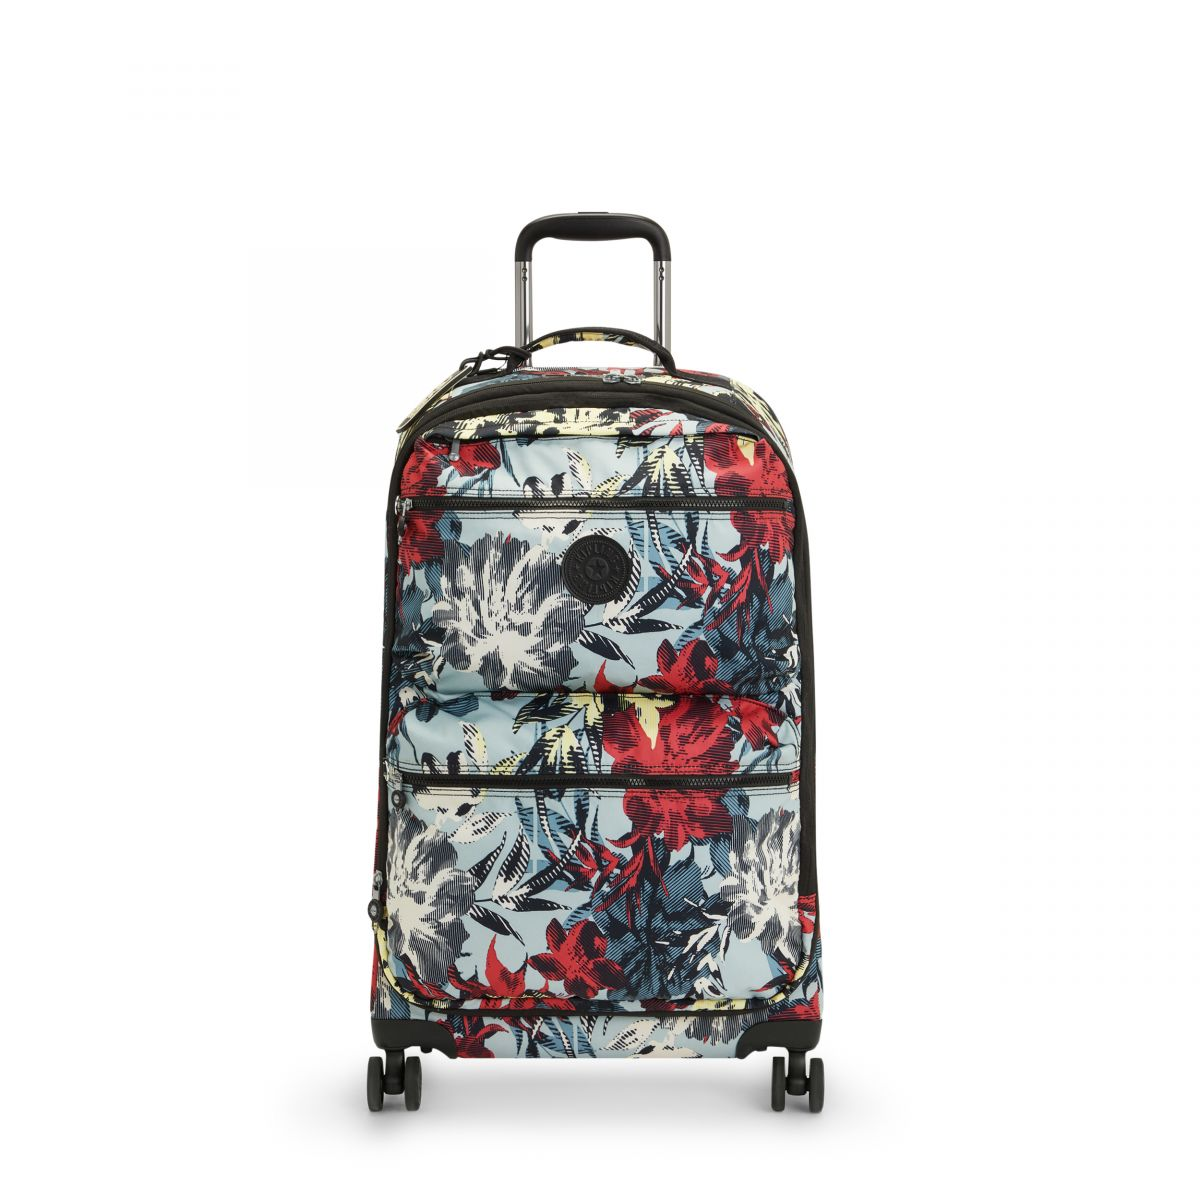 CITY SPINNER M LUGGAGE by Kipling - Front view